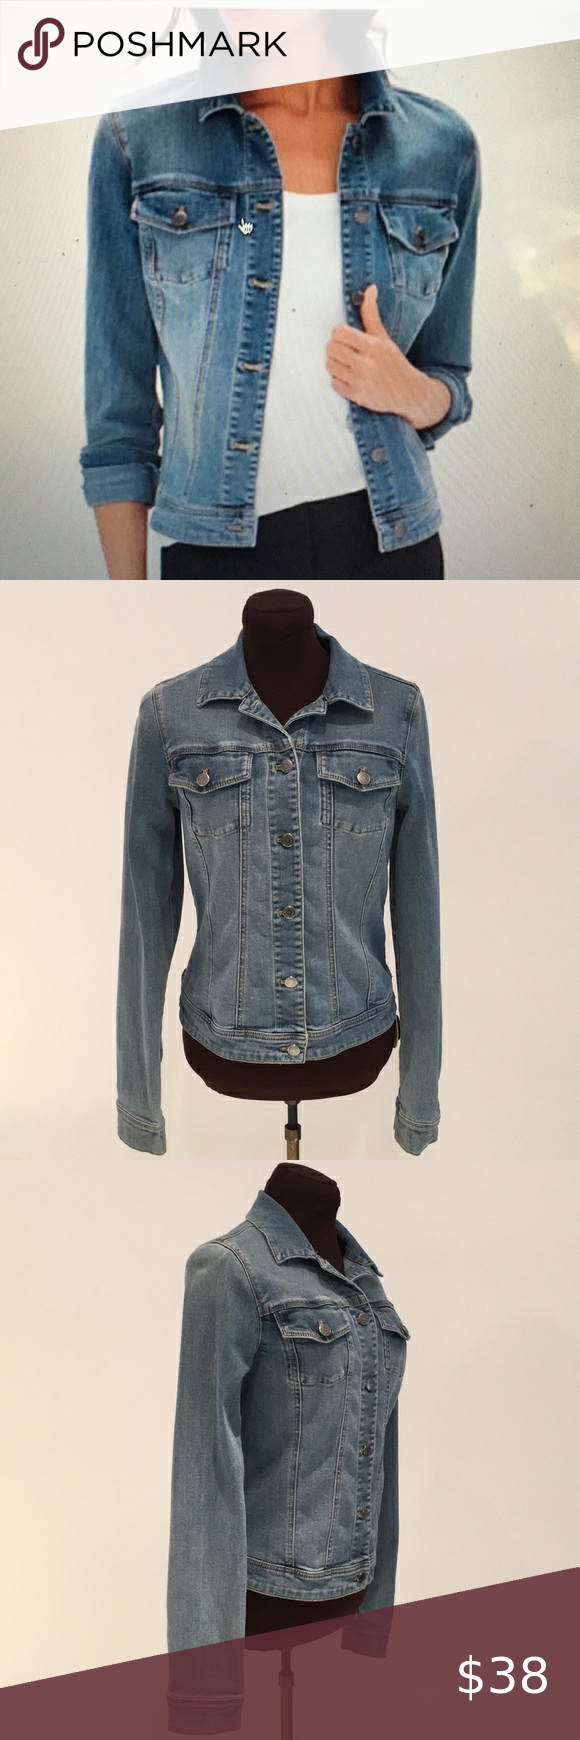 The Limited classic blue jeans jacket small Beautiful jeans jacket Medium blue Stretch for comfort M